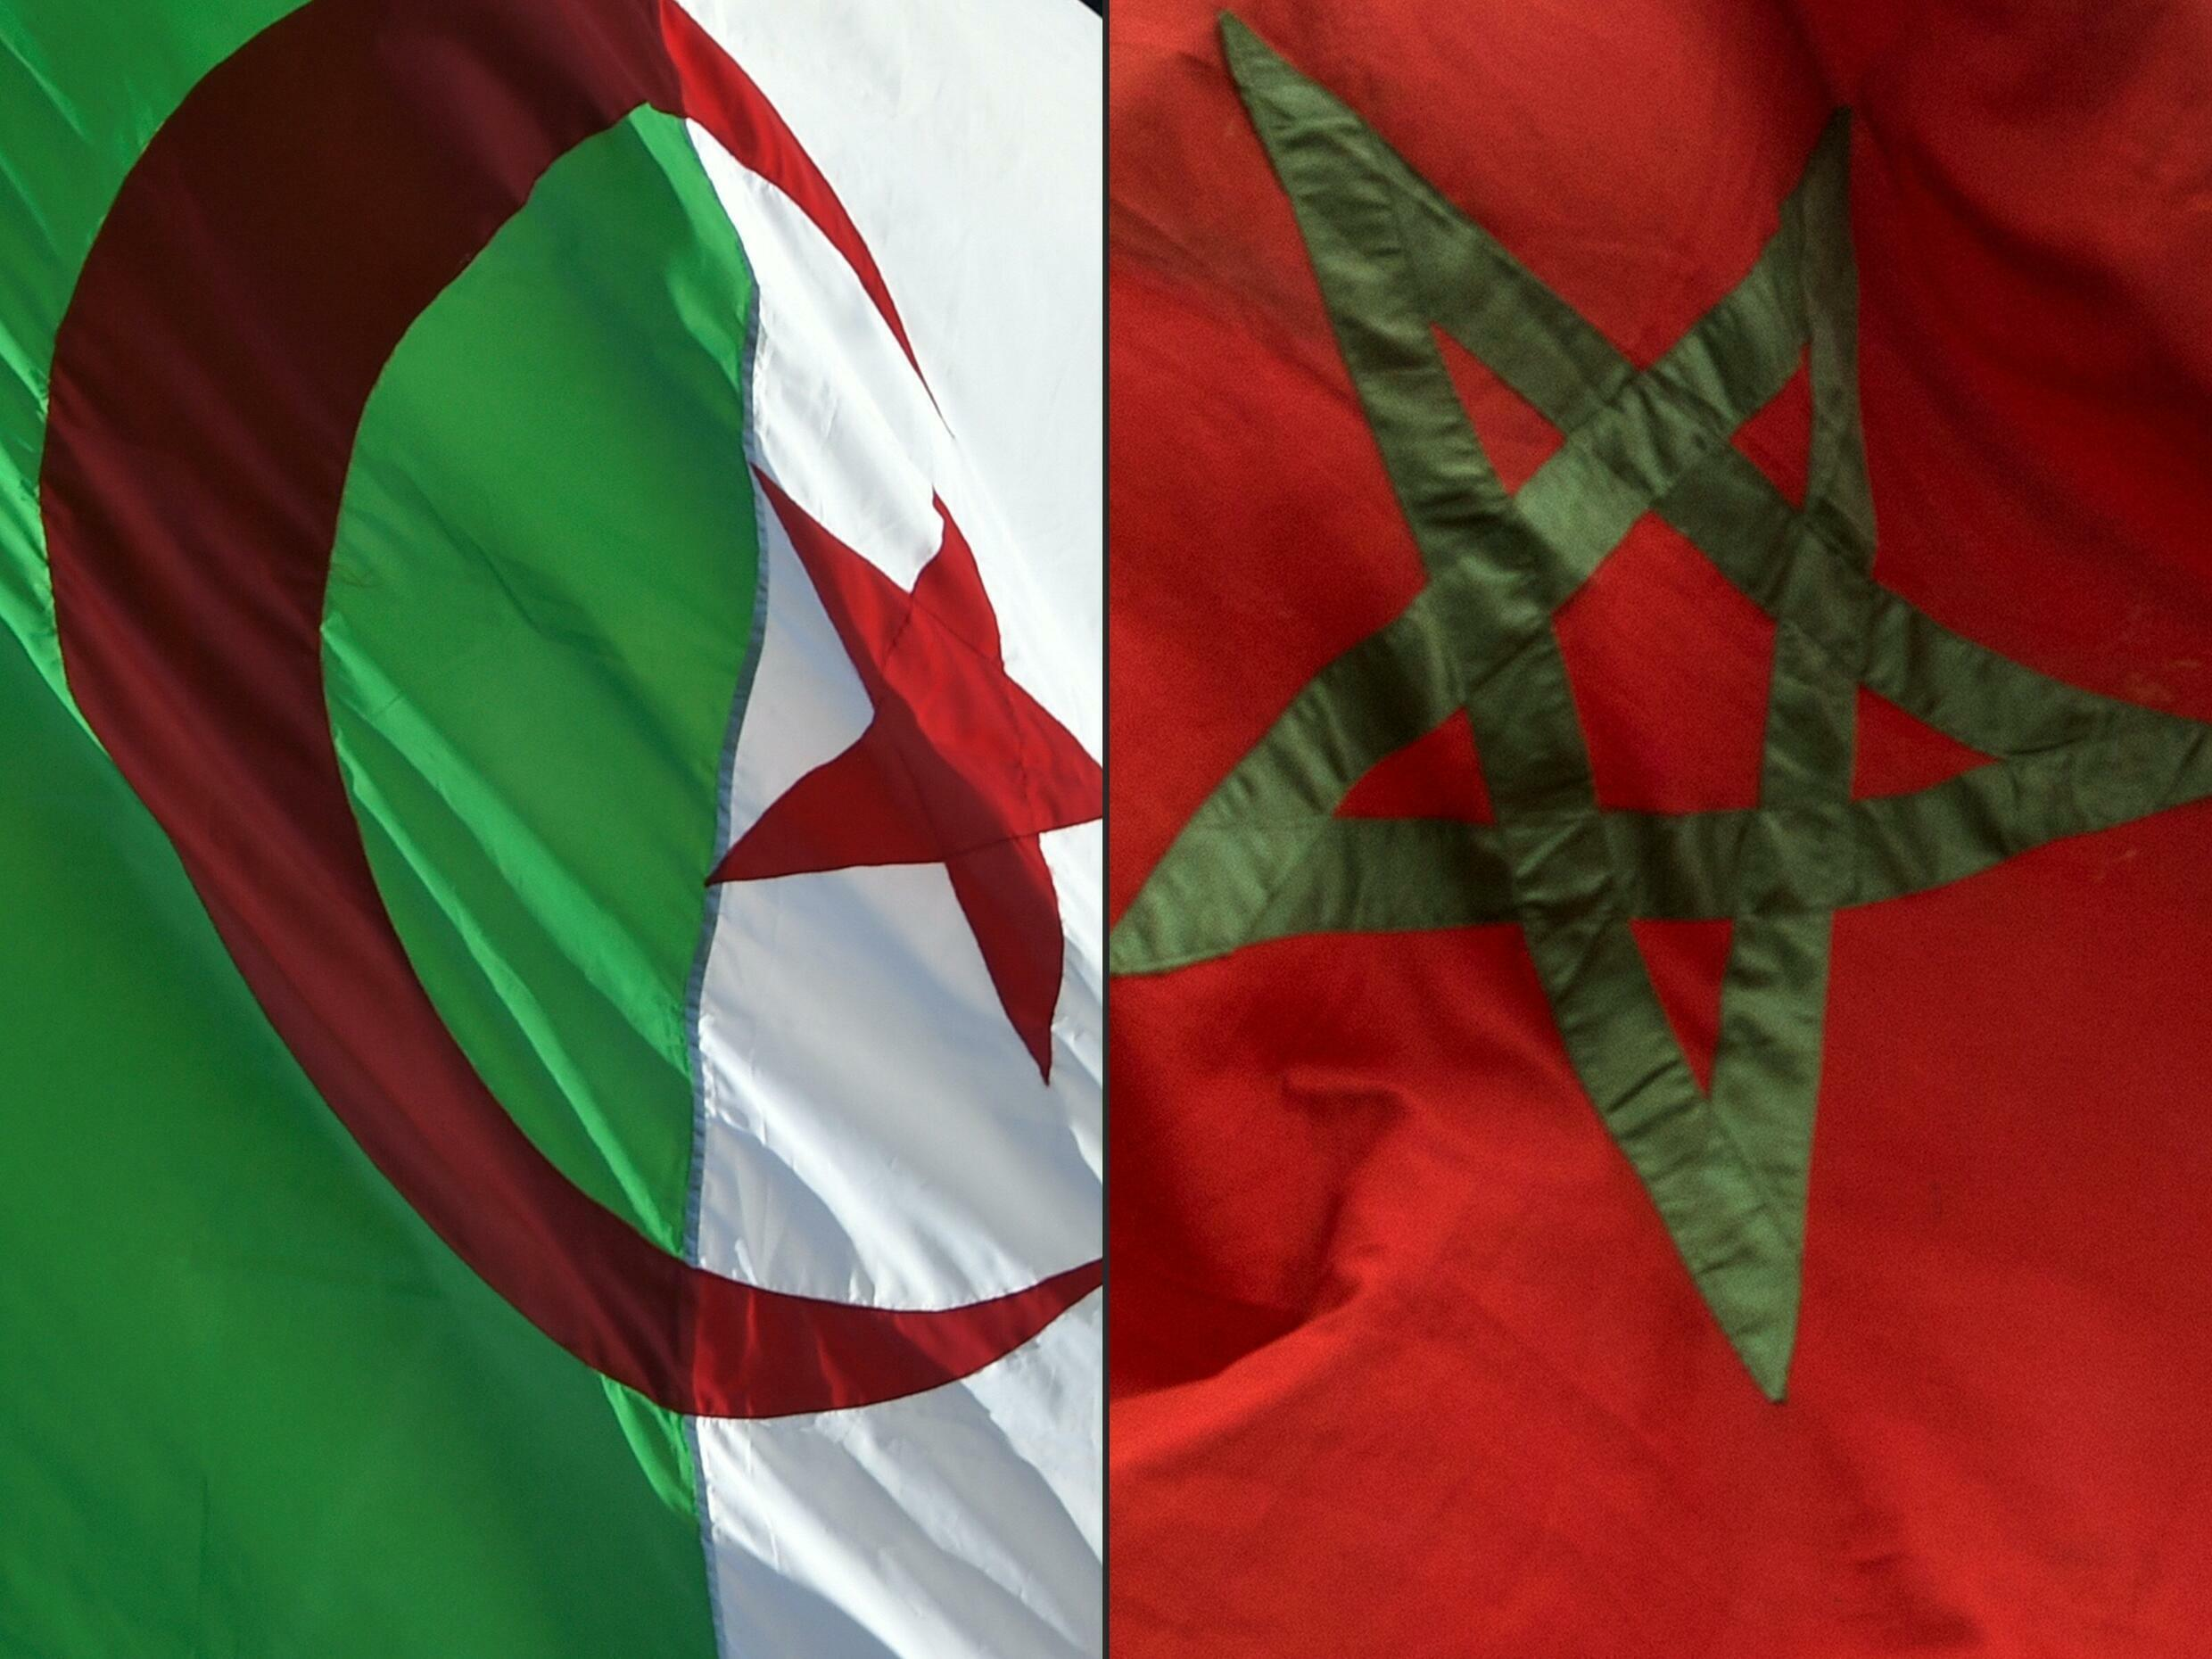 Algeria and Morocco have seen tensions soar in recent months